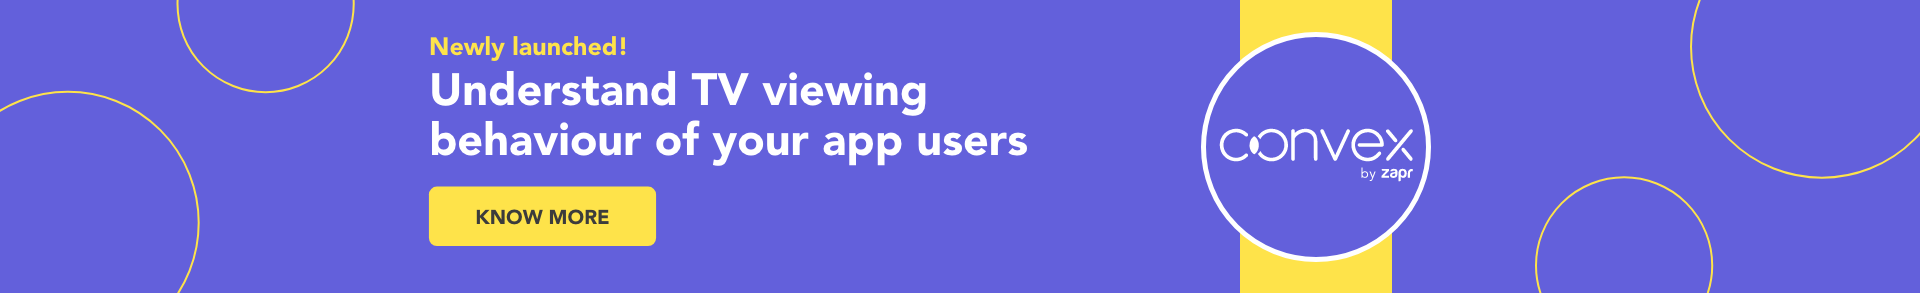 newly-launched-convex-understand-tv-viewing-behaviour-of-app-users